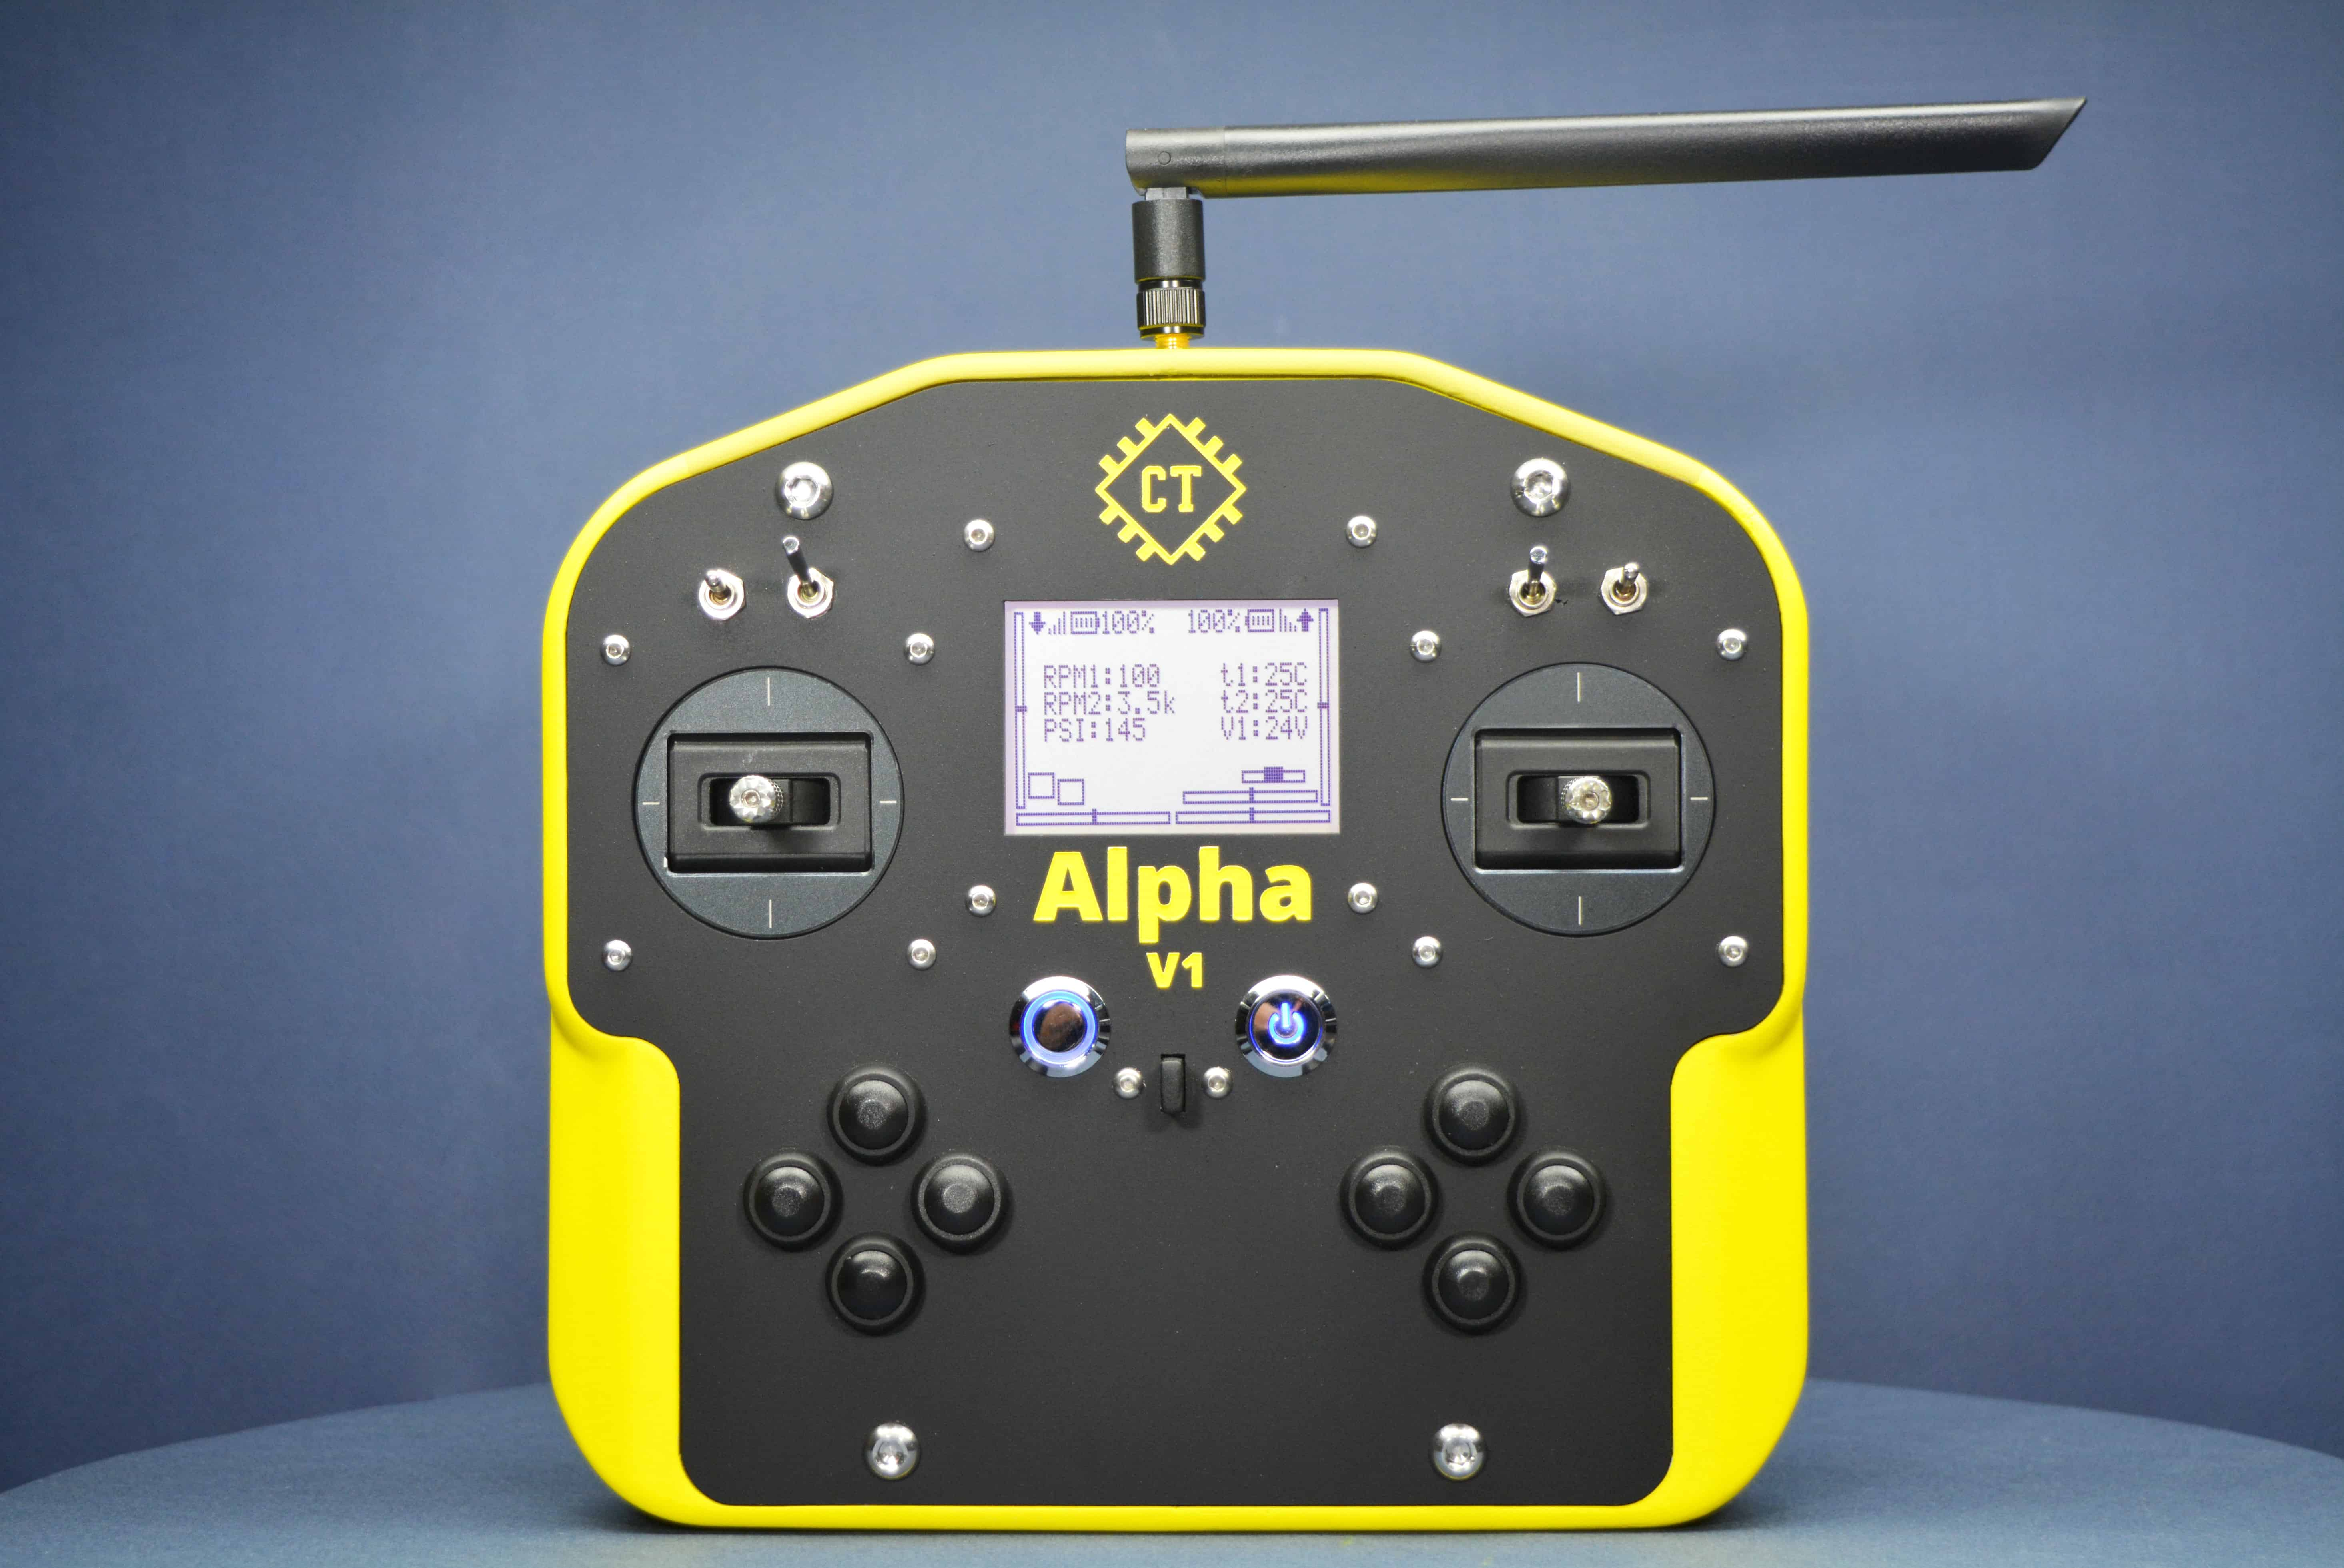 Alpha V1 Open Source and Arduino Compatible Remote Controller (Transmitter) Front View